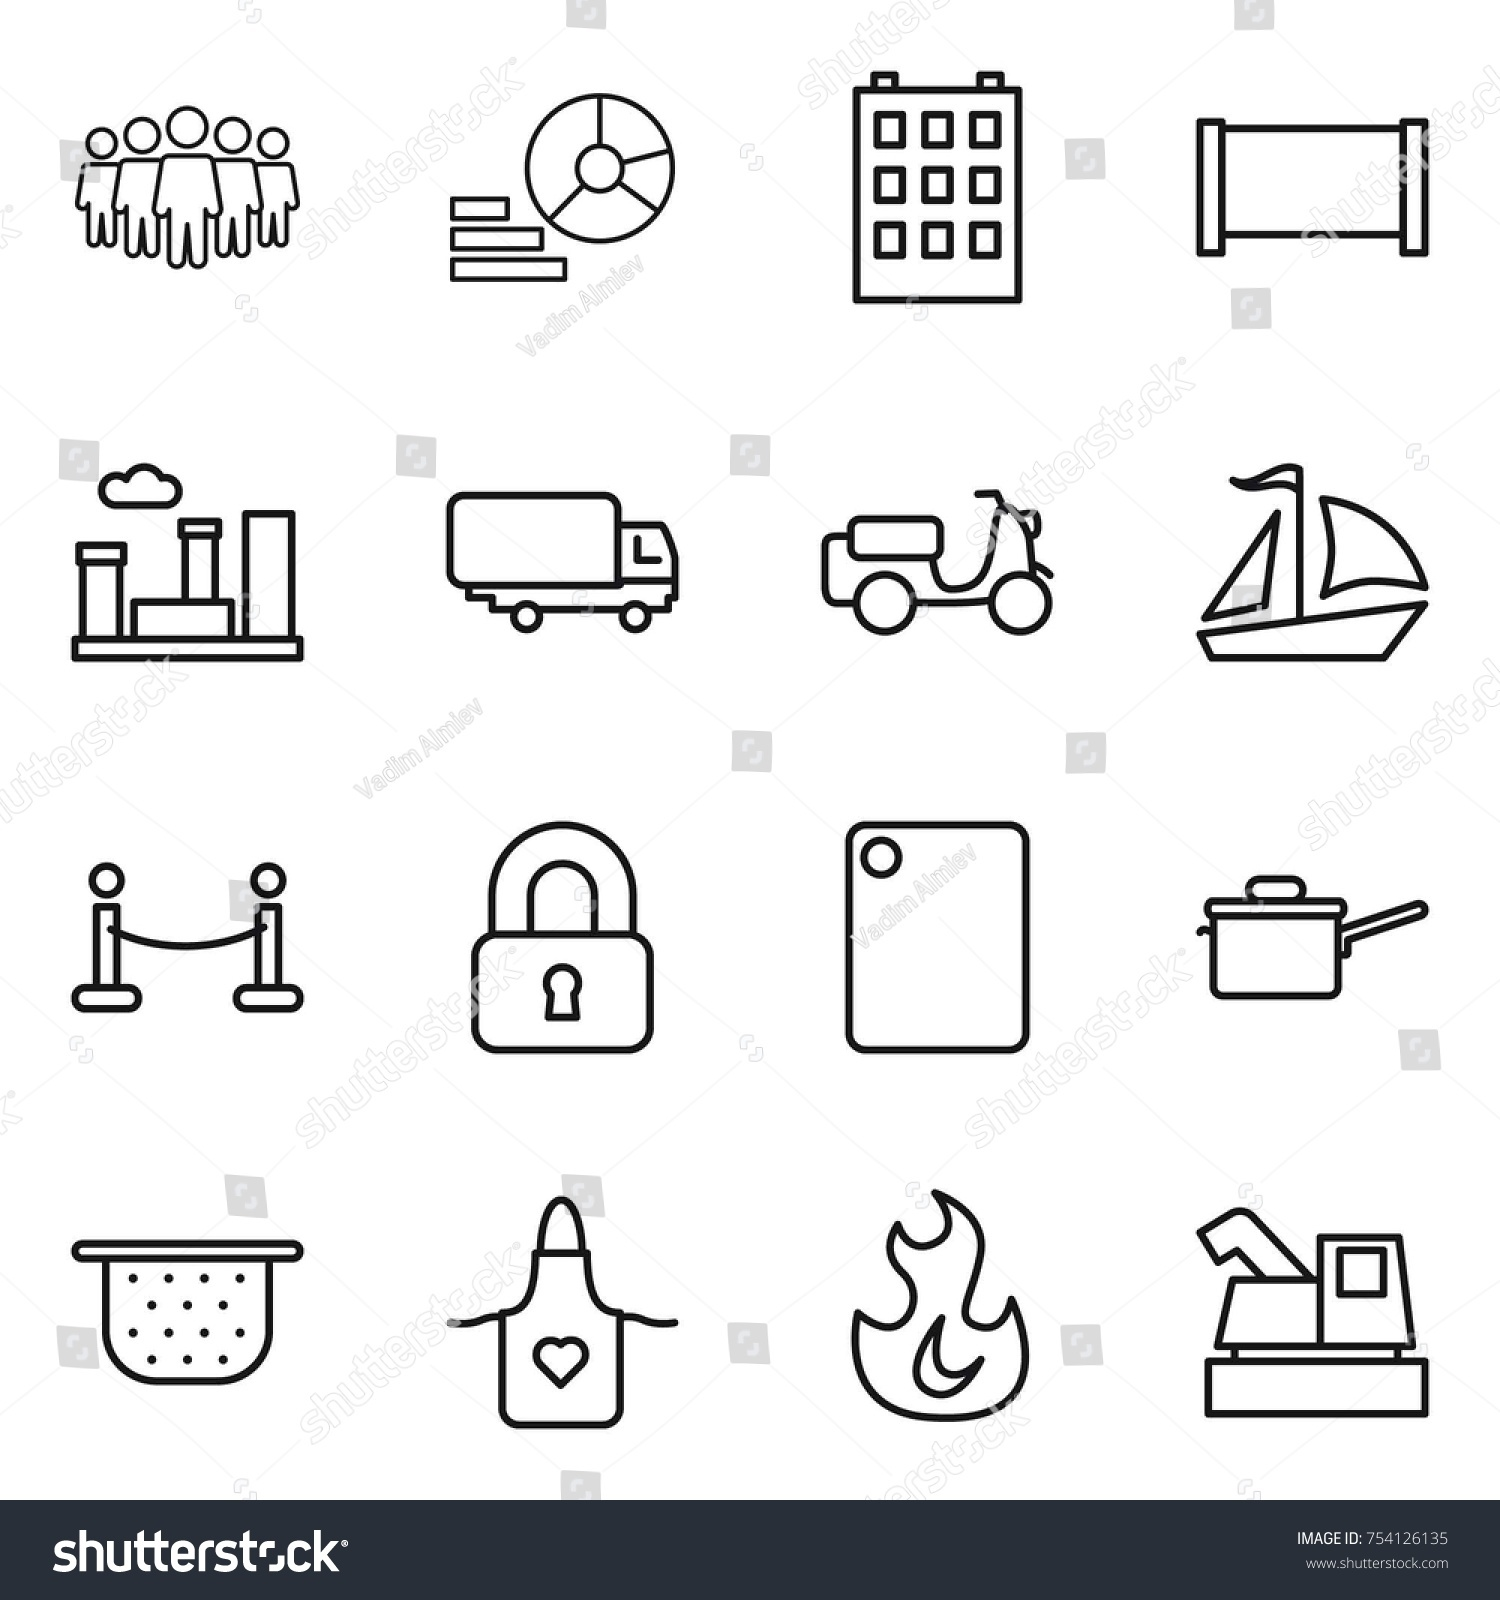 hight resolution of thin line icon set team diagram building fence city shipping